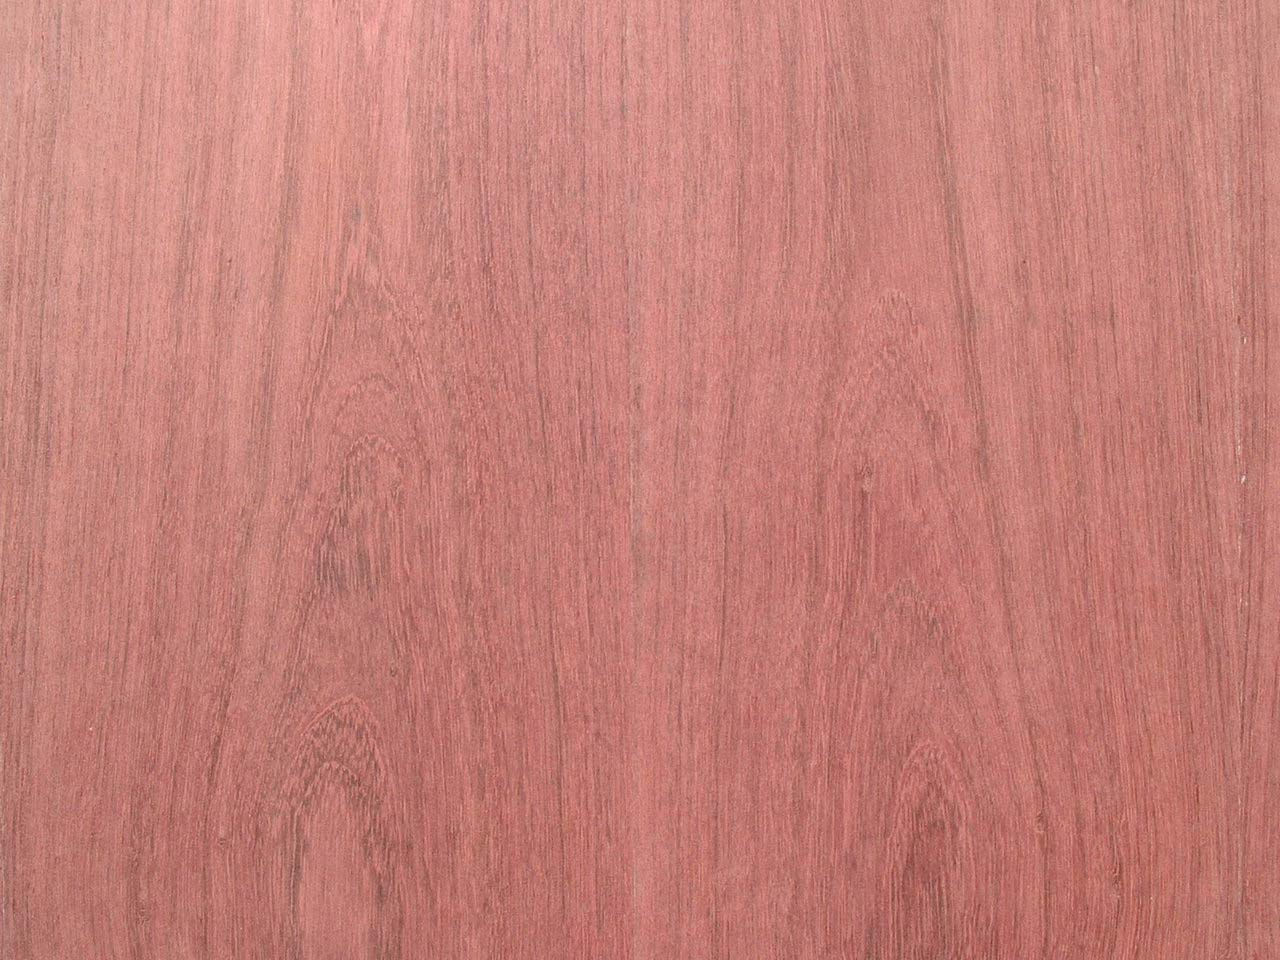 Purpleheart veneer deals on 1001 blocks for Purple heart flooring